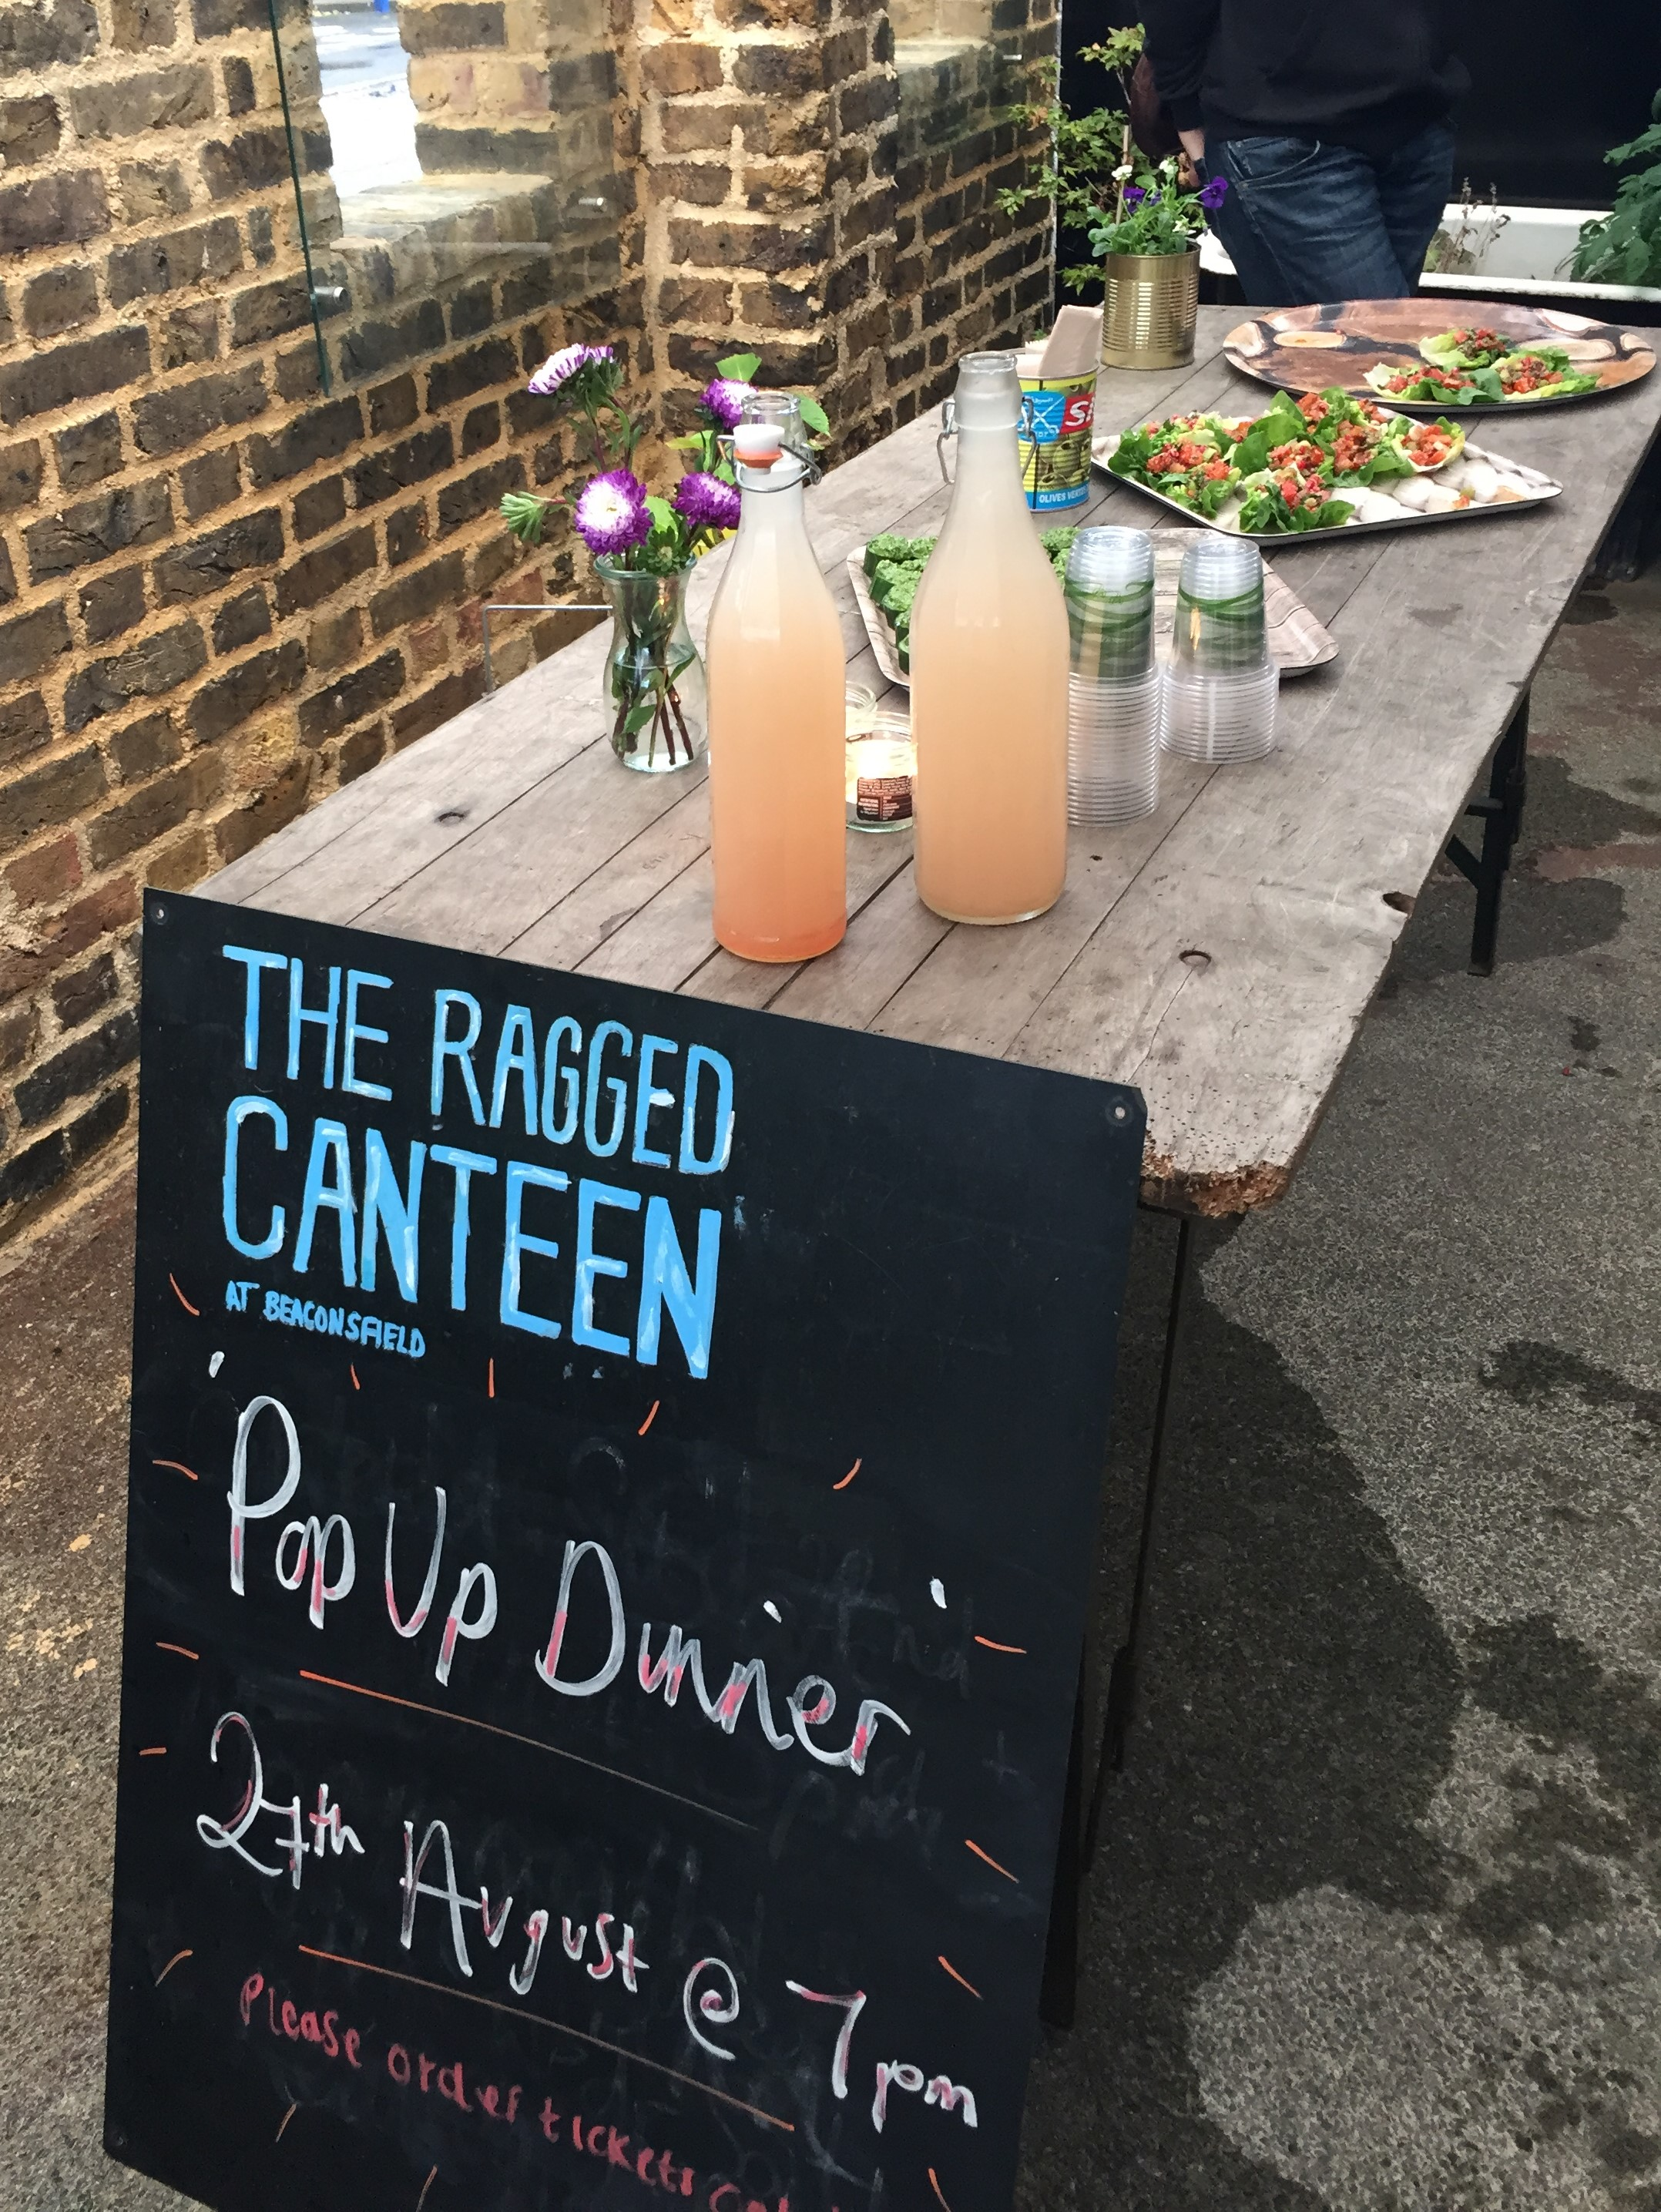 The Ragged Canteen sign and canapes - kenningtonrunoff.com